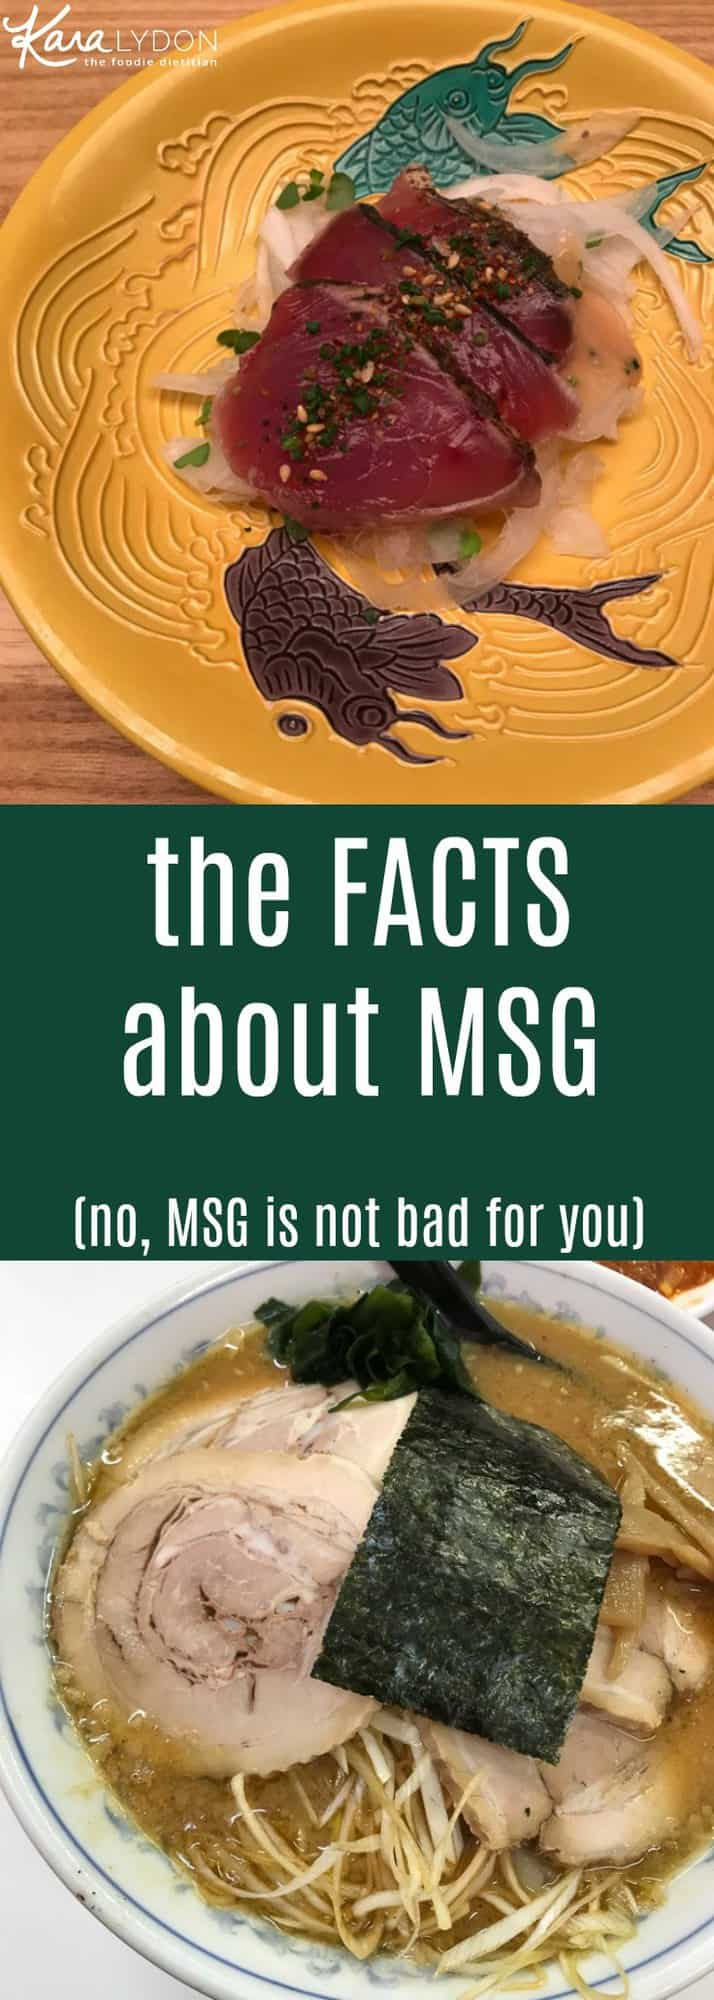 Have some preconceived notions around MSG? Today I'm providing the facts about MSG and umami so you can make an informed decision on whether or not your beliefs are worth holding on to. #MSG #umami